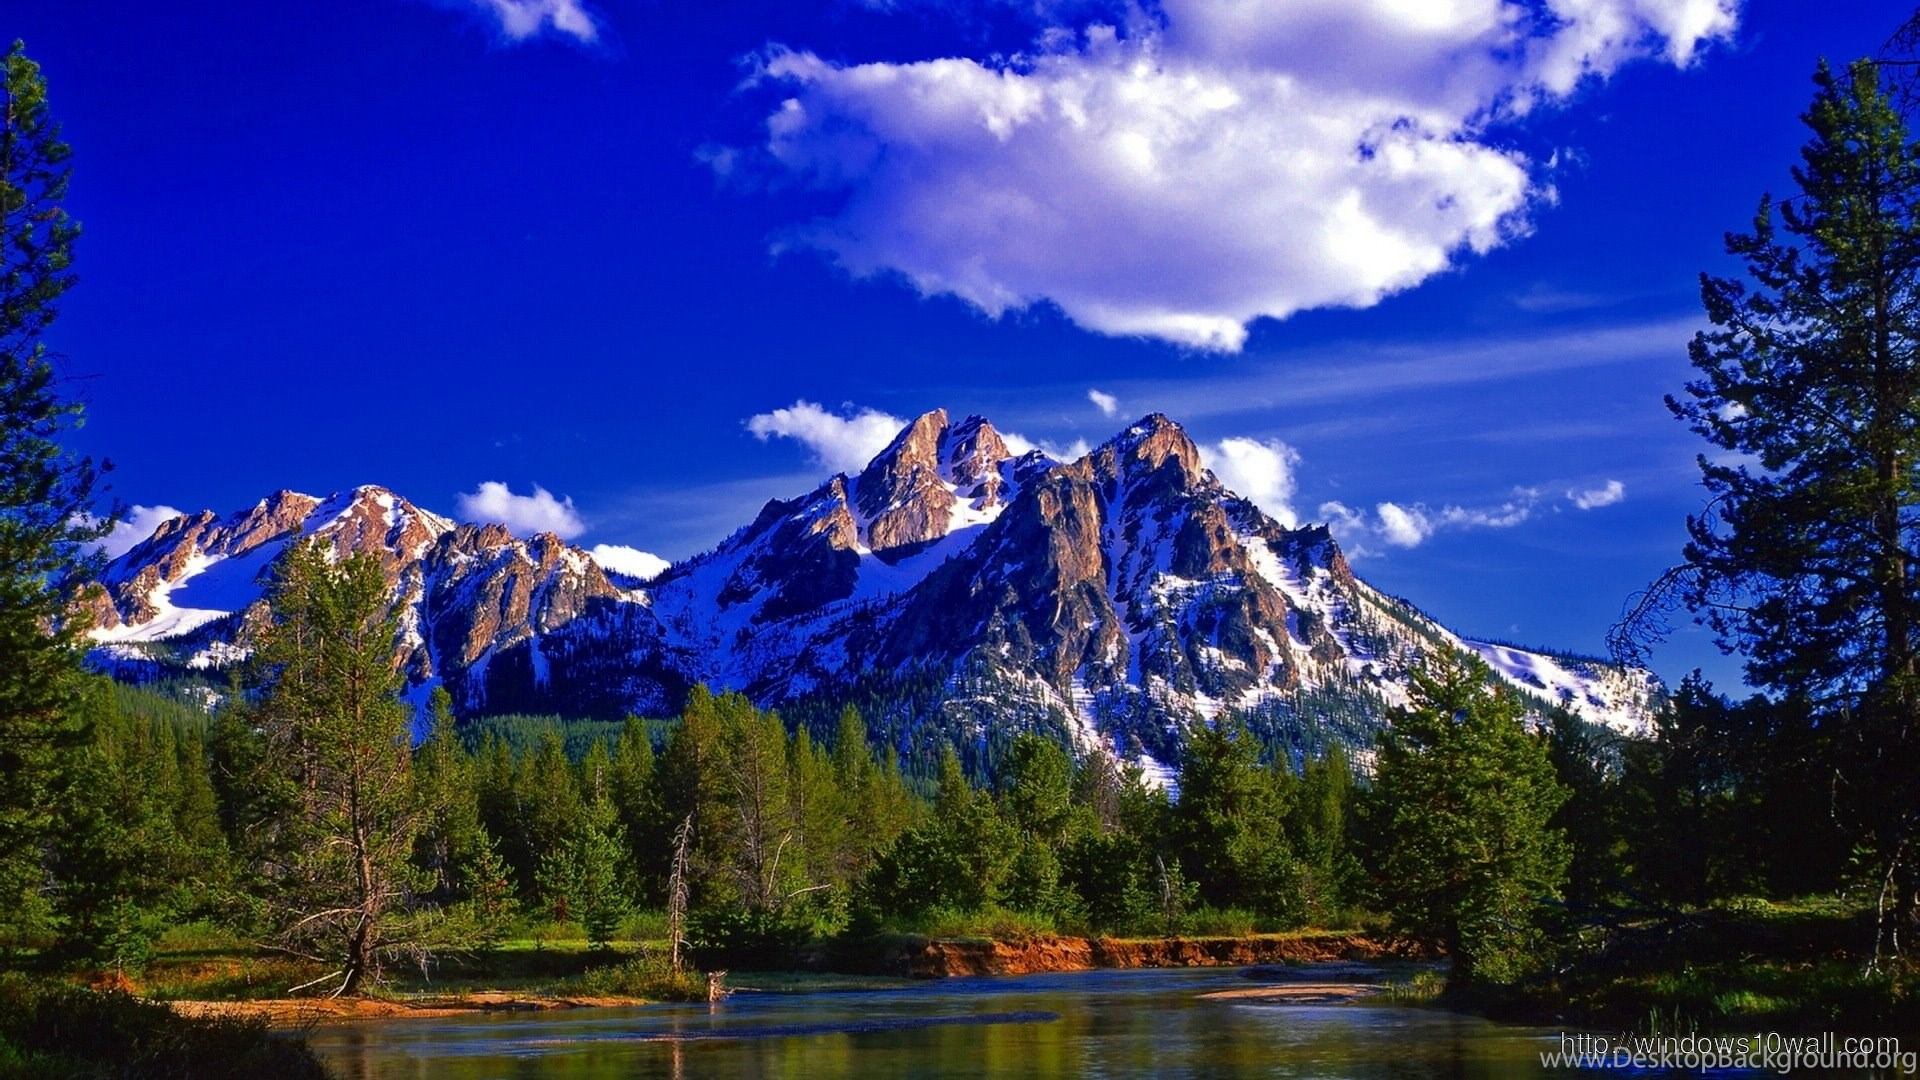 Mountain Nature Blue Sky Wallpapers